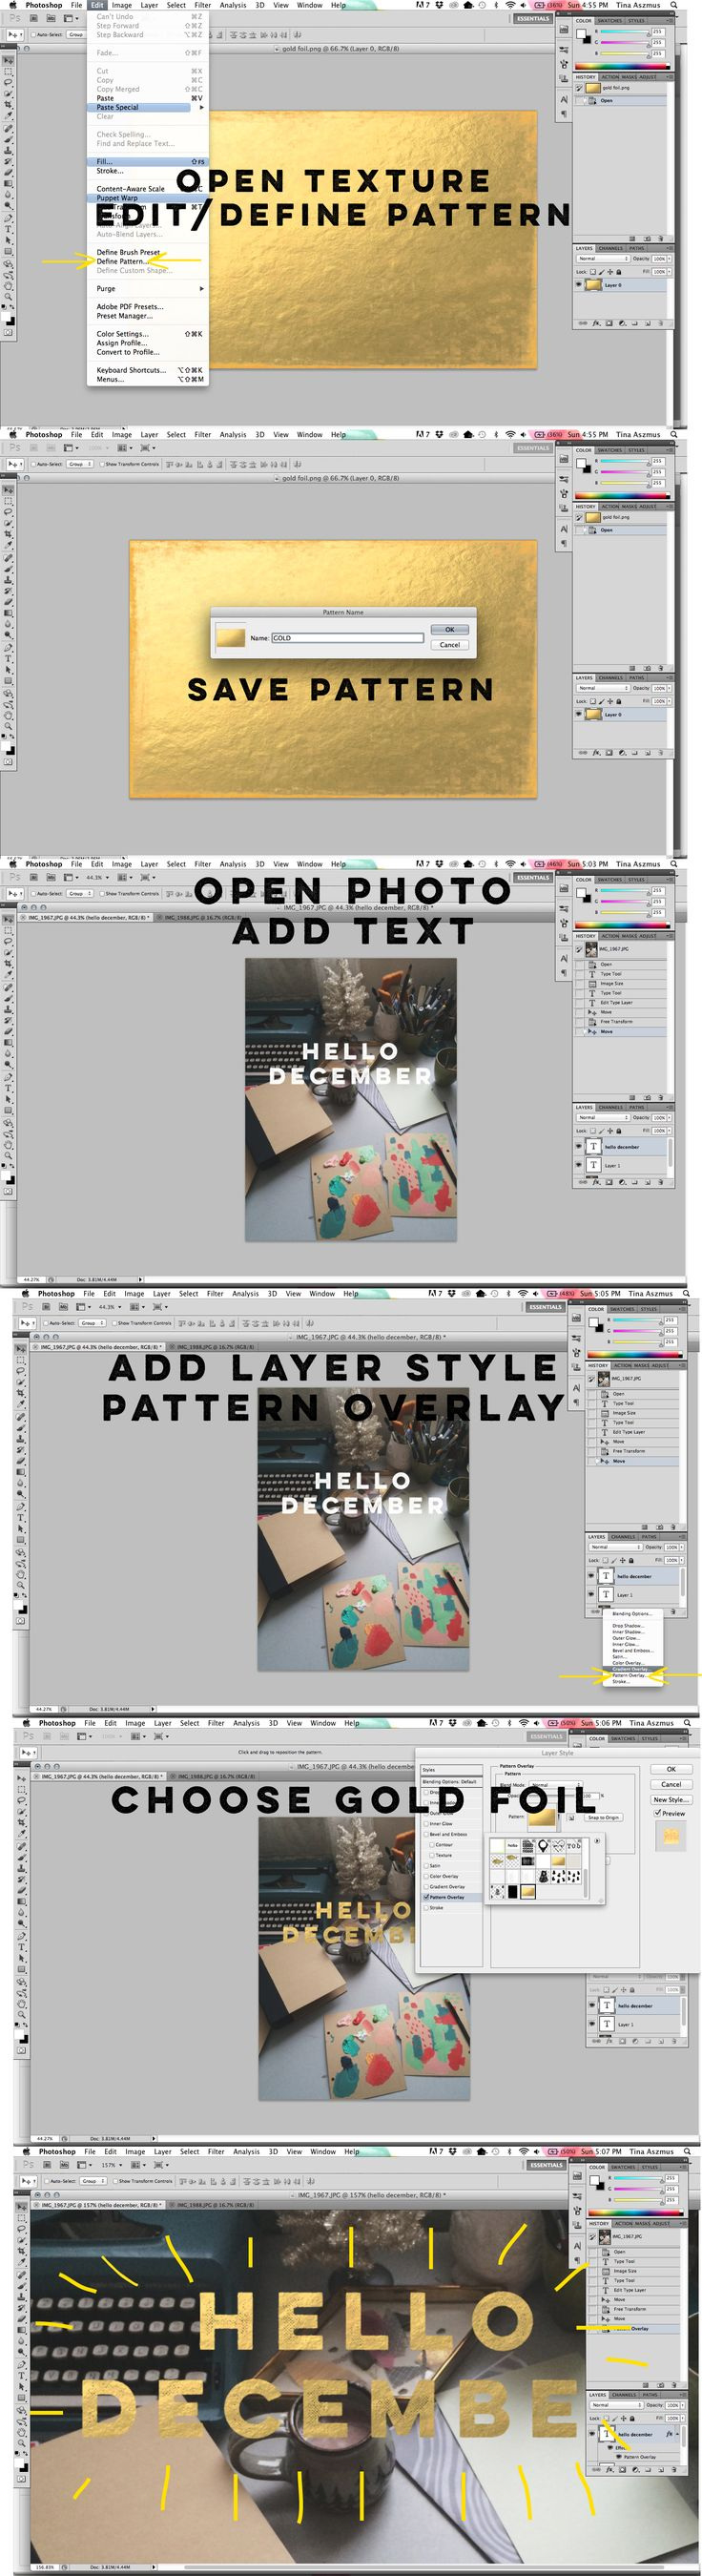 448 best w adobe illustrator images on pinterest graph design how to add gold foil to photos fandeluxe Choice Image